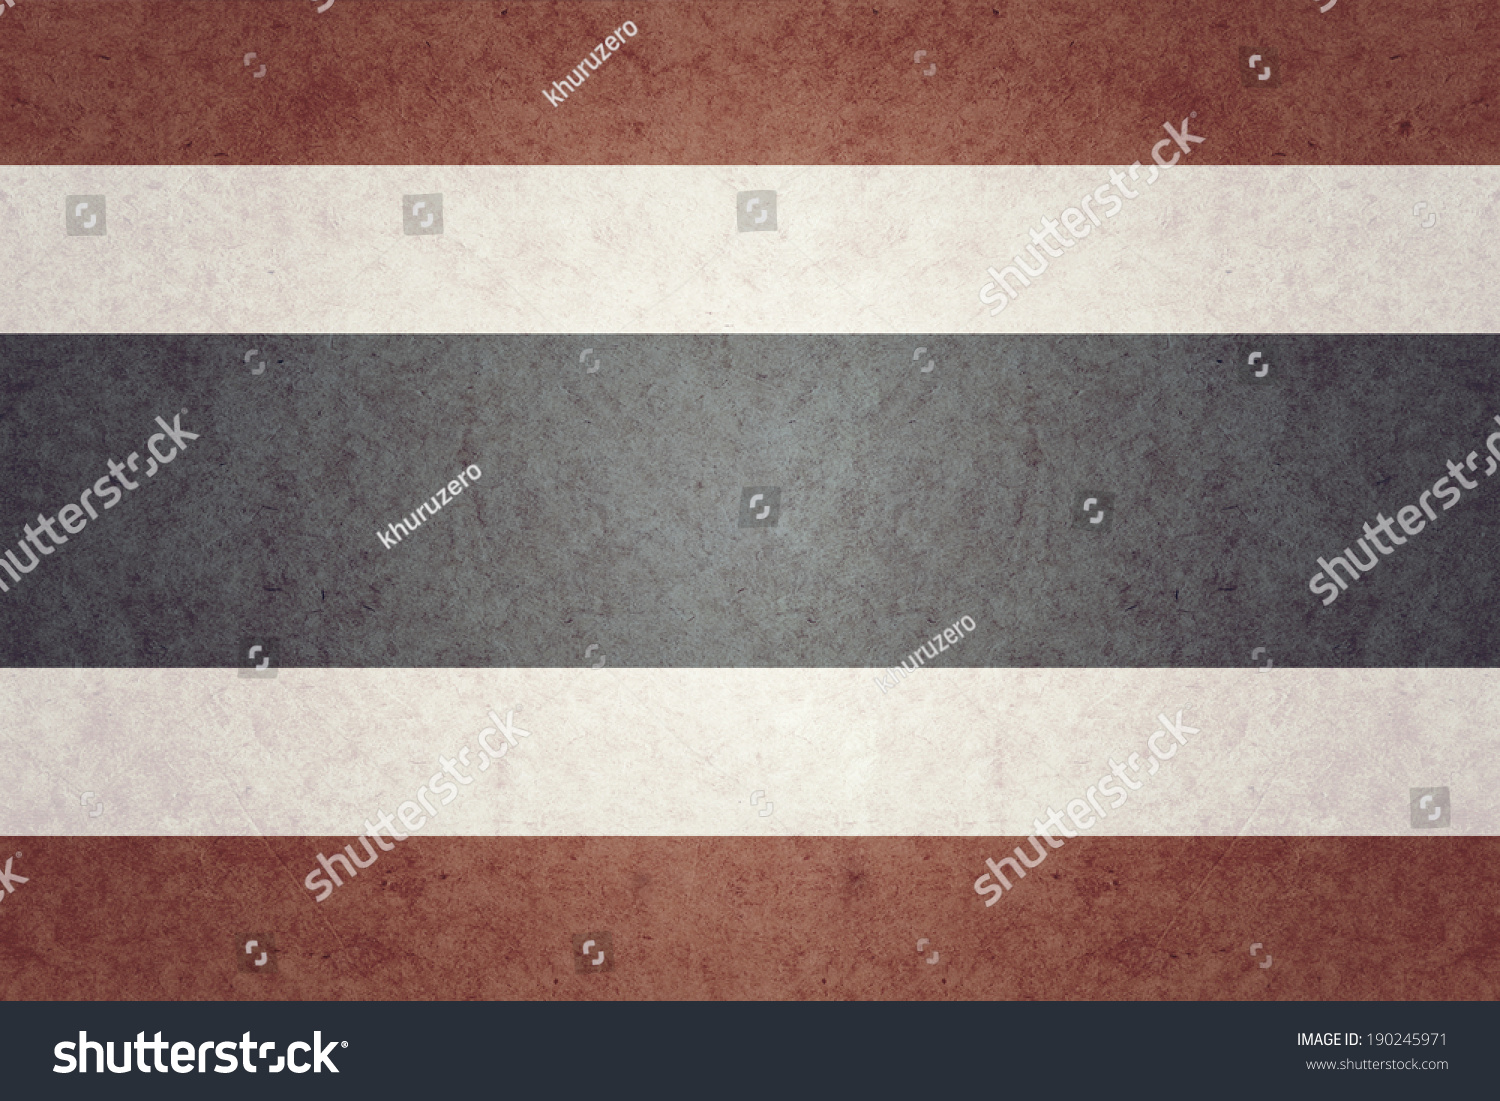 Royalty Free Stock Illustration of Thailand Flag On Old Paper